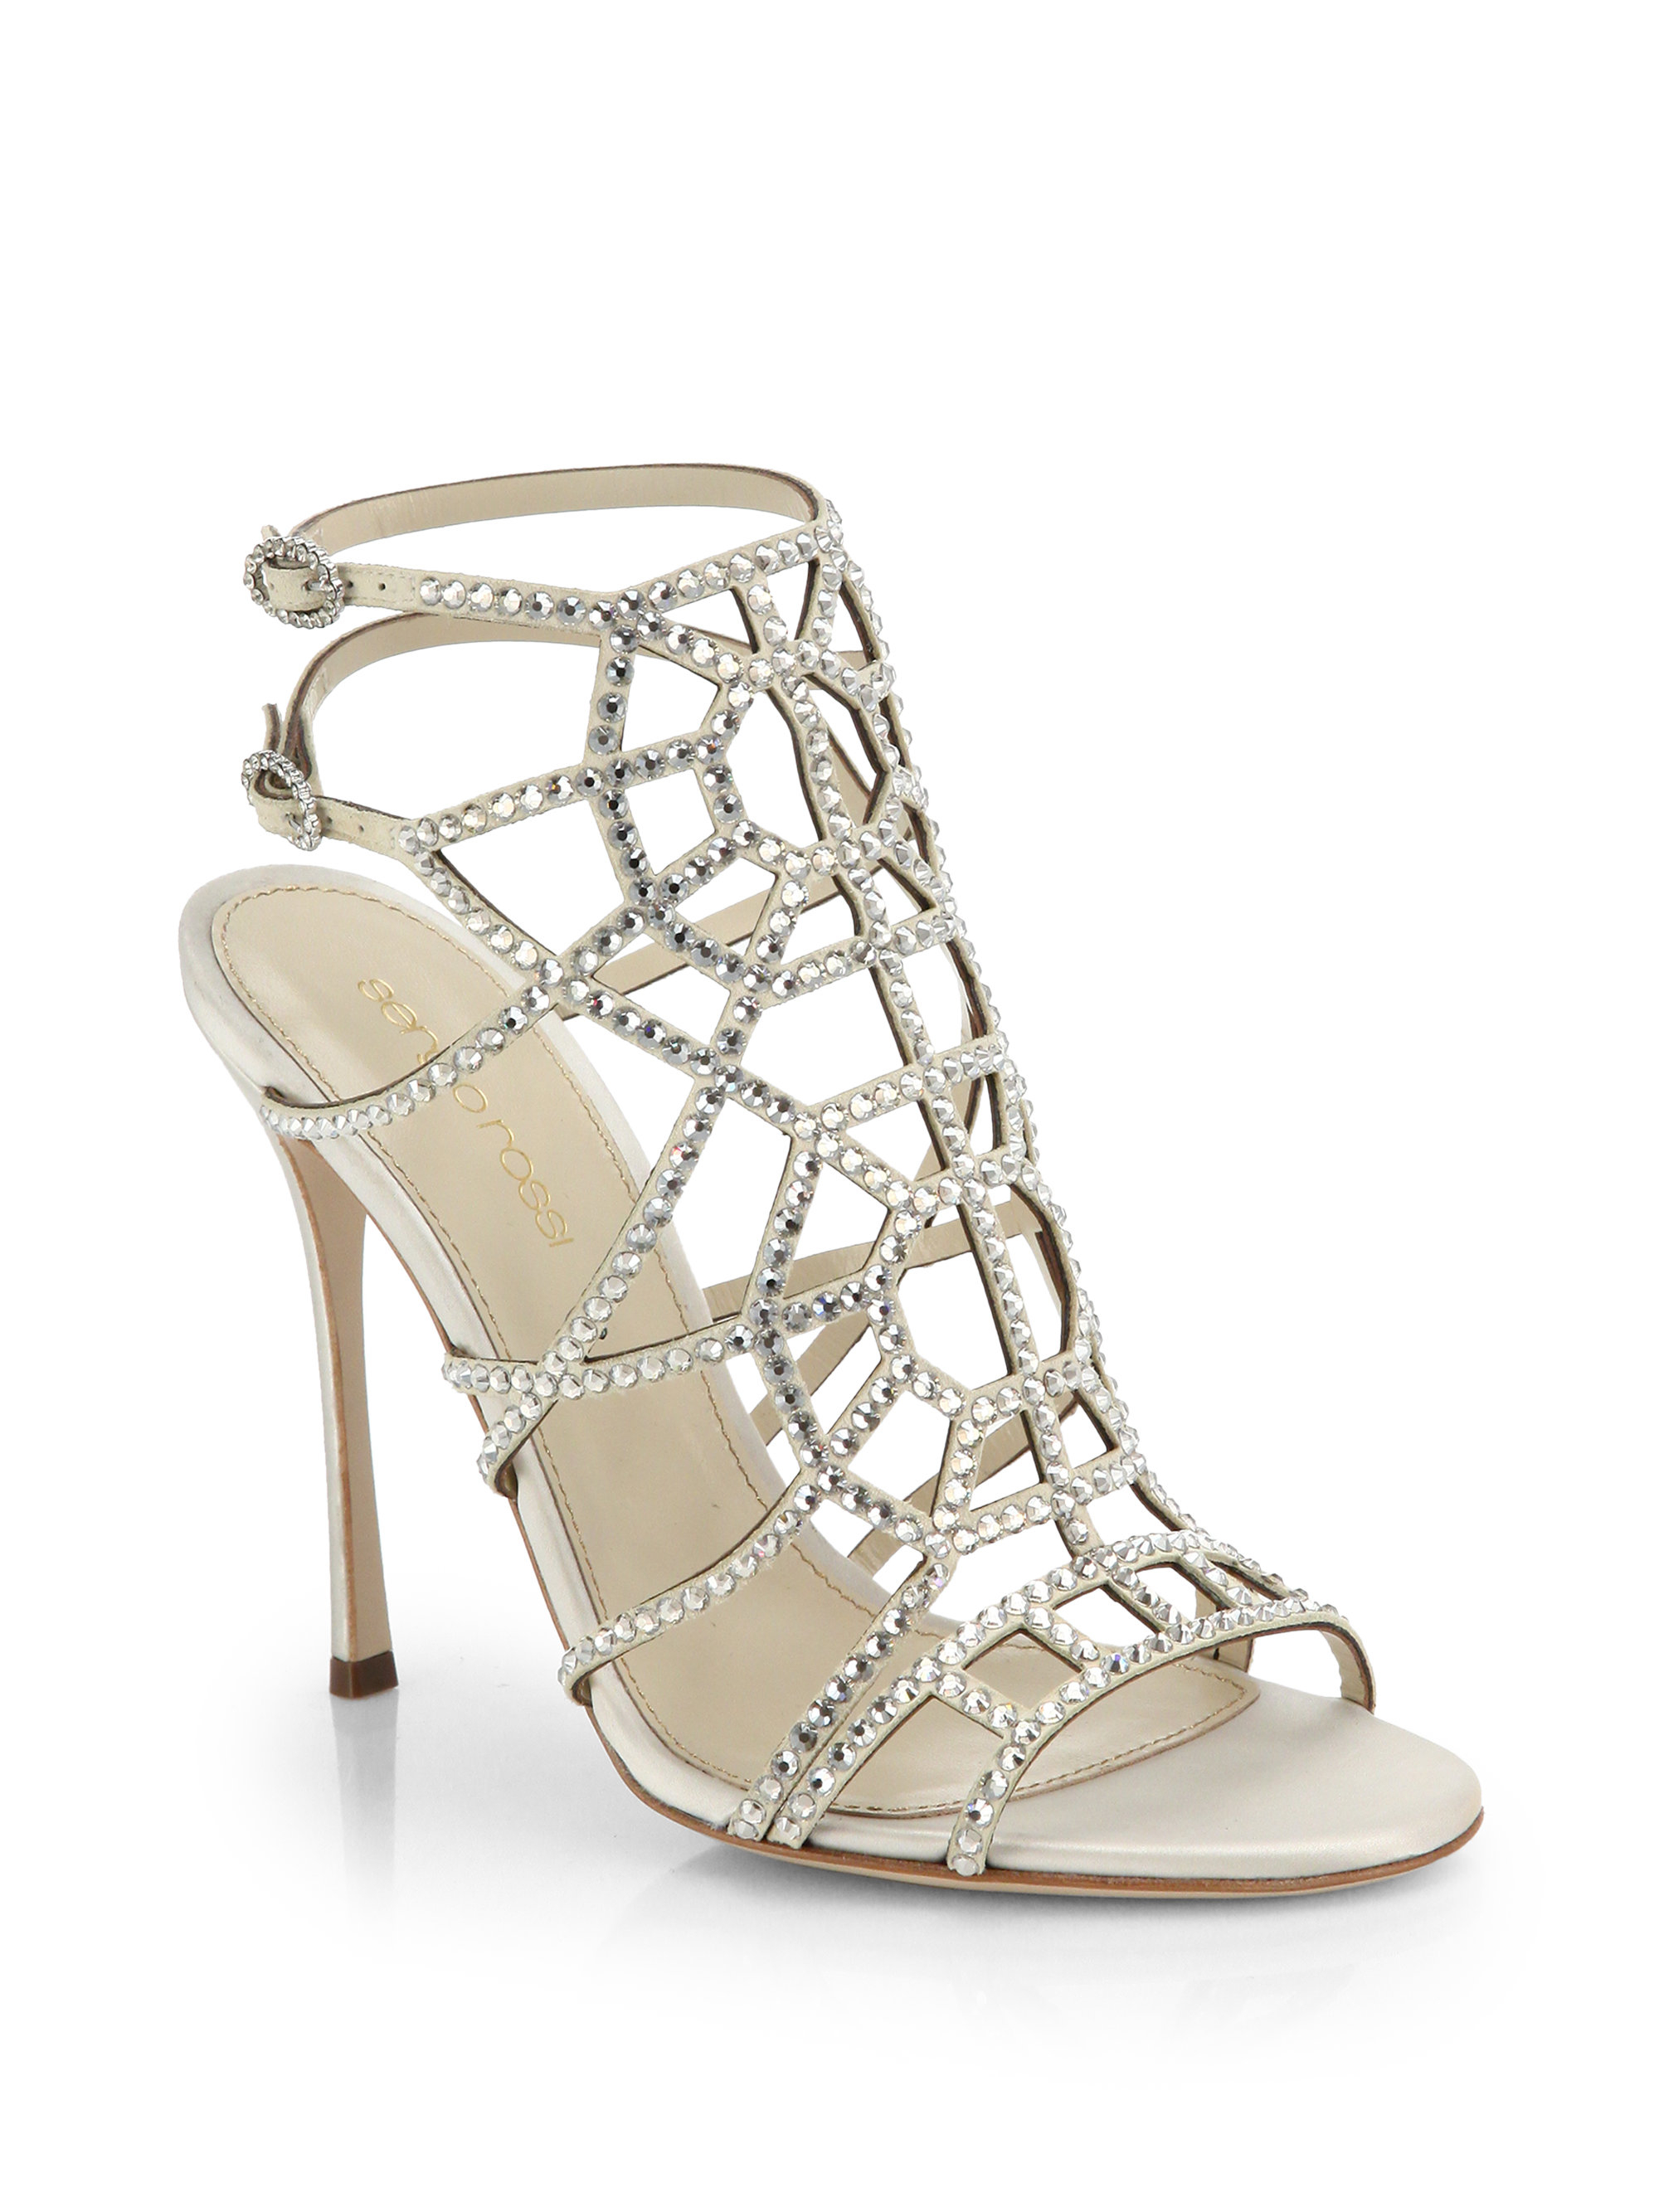 discount nicekicks free shipping amazon Sergio Rossi Crystal Cage Sandals 100% authentic sale online cksFn6